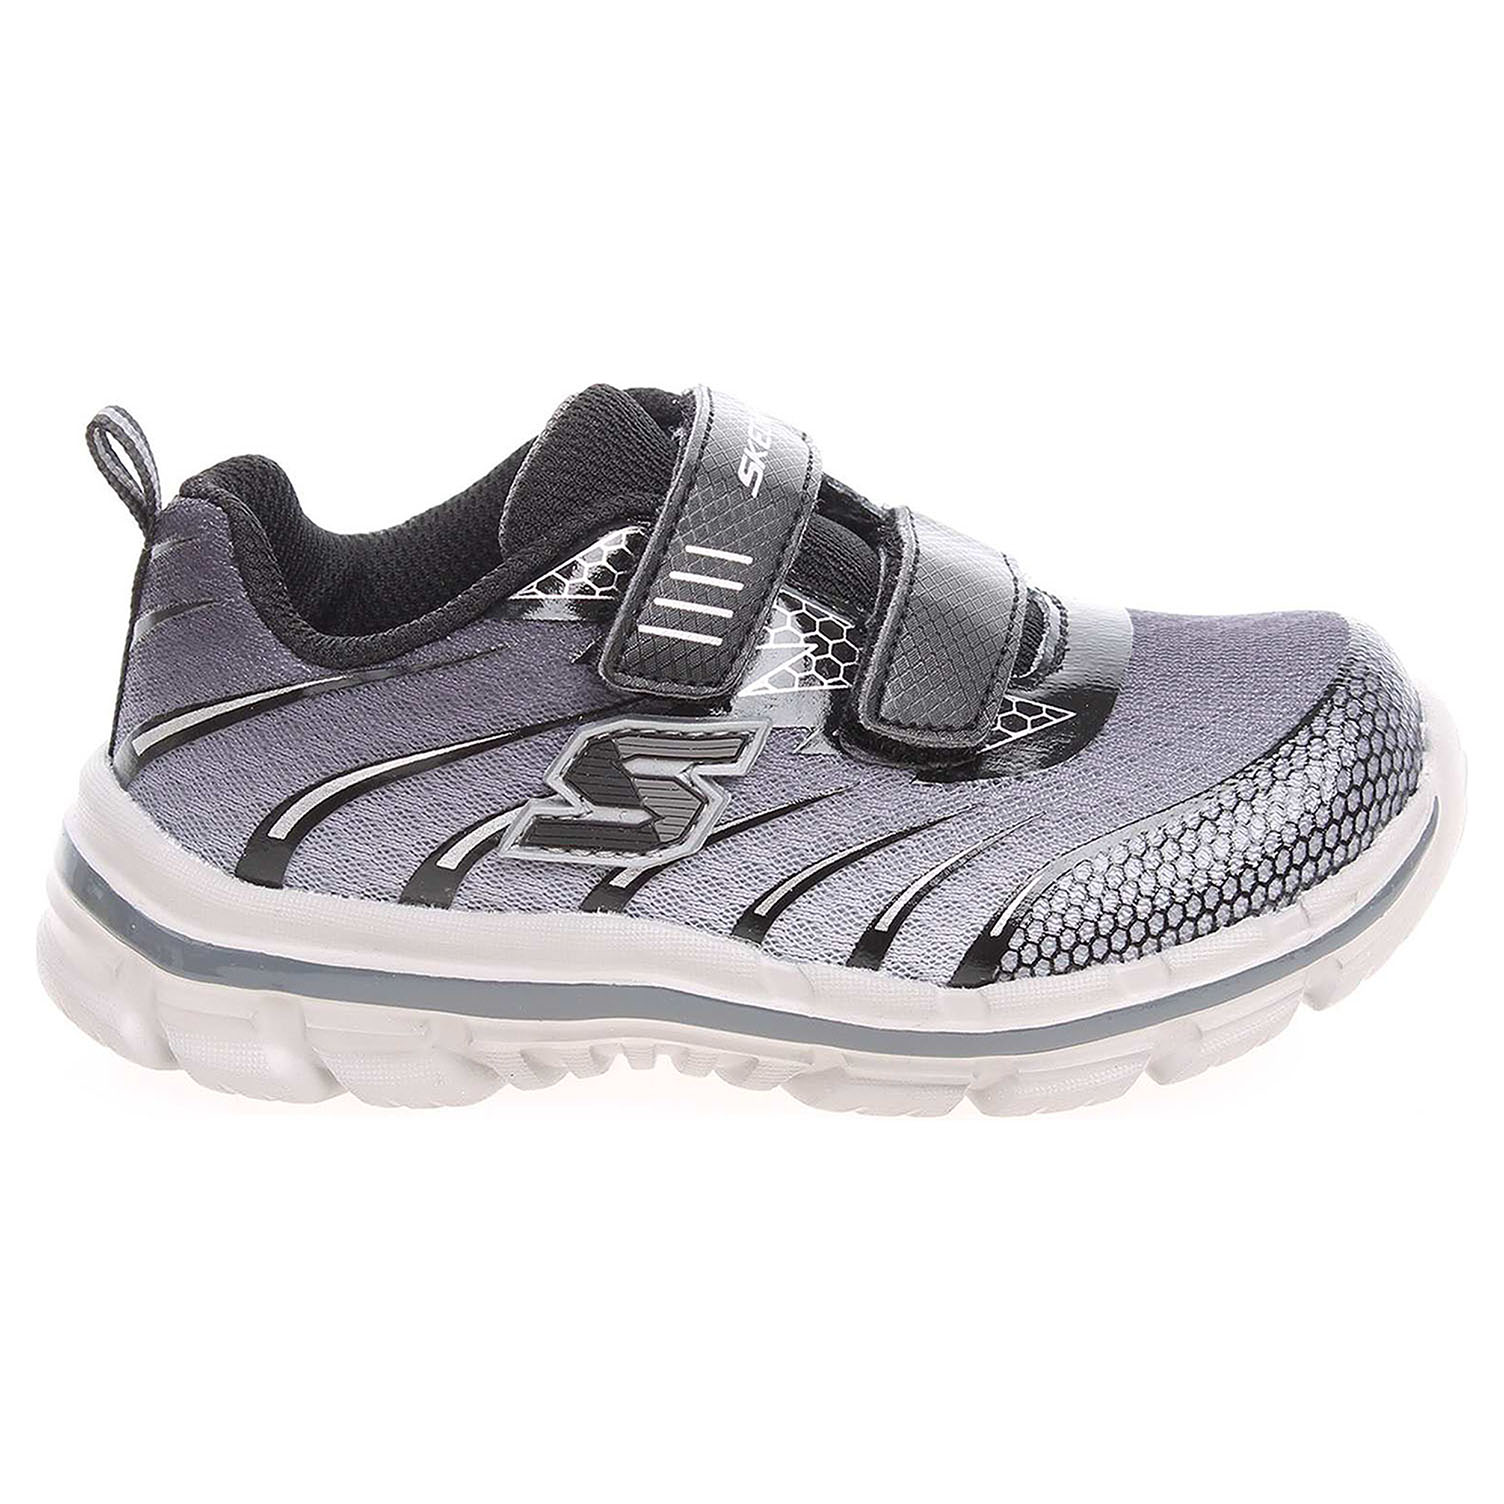 Skechers Top Speed charcoal-black